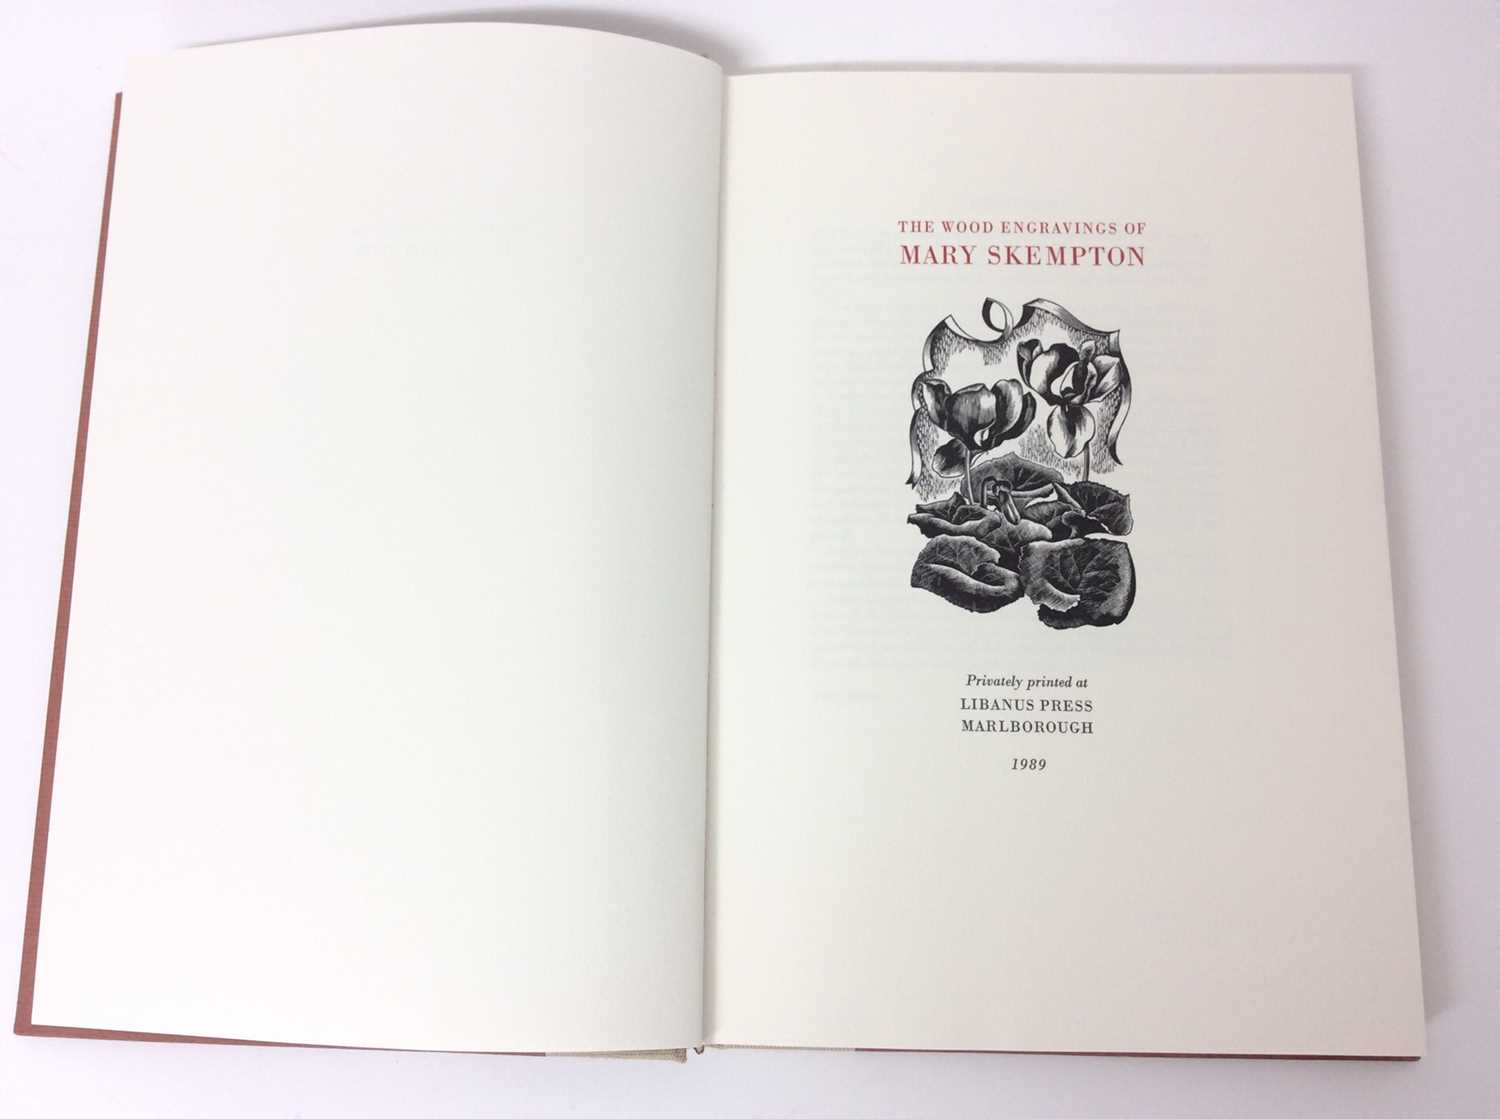 Mary Skempton - The Wood Engravings of Mary Skempton limited edition of 150 - Image 2 of 7